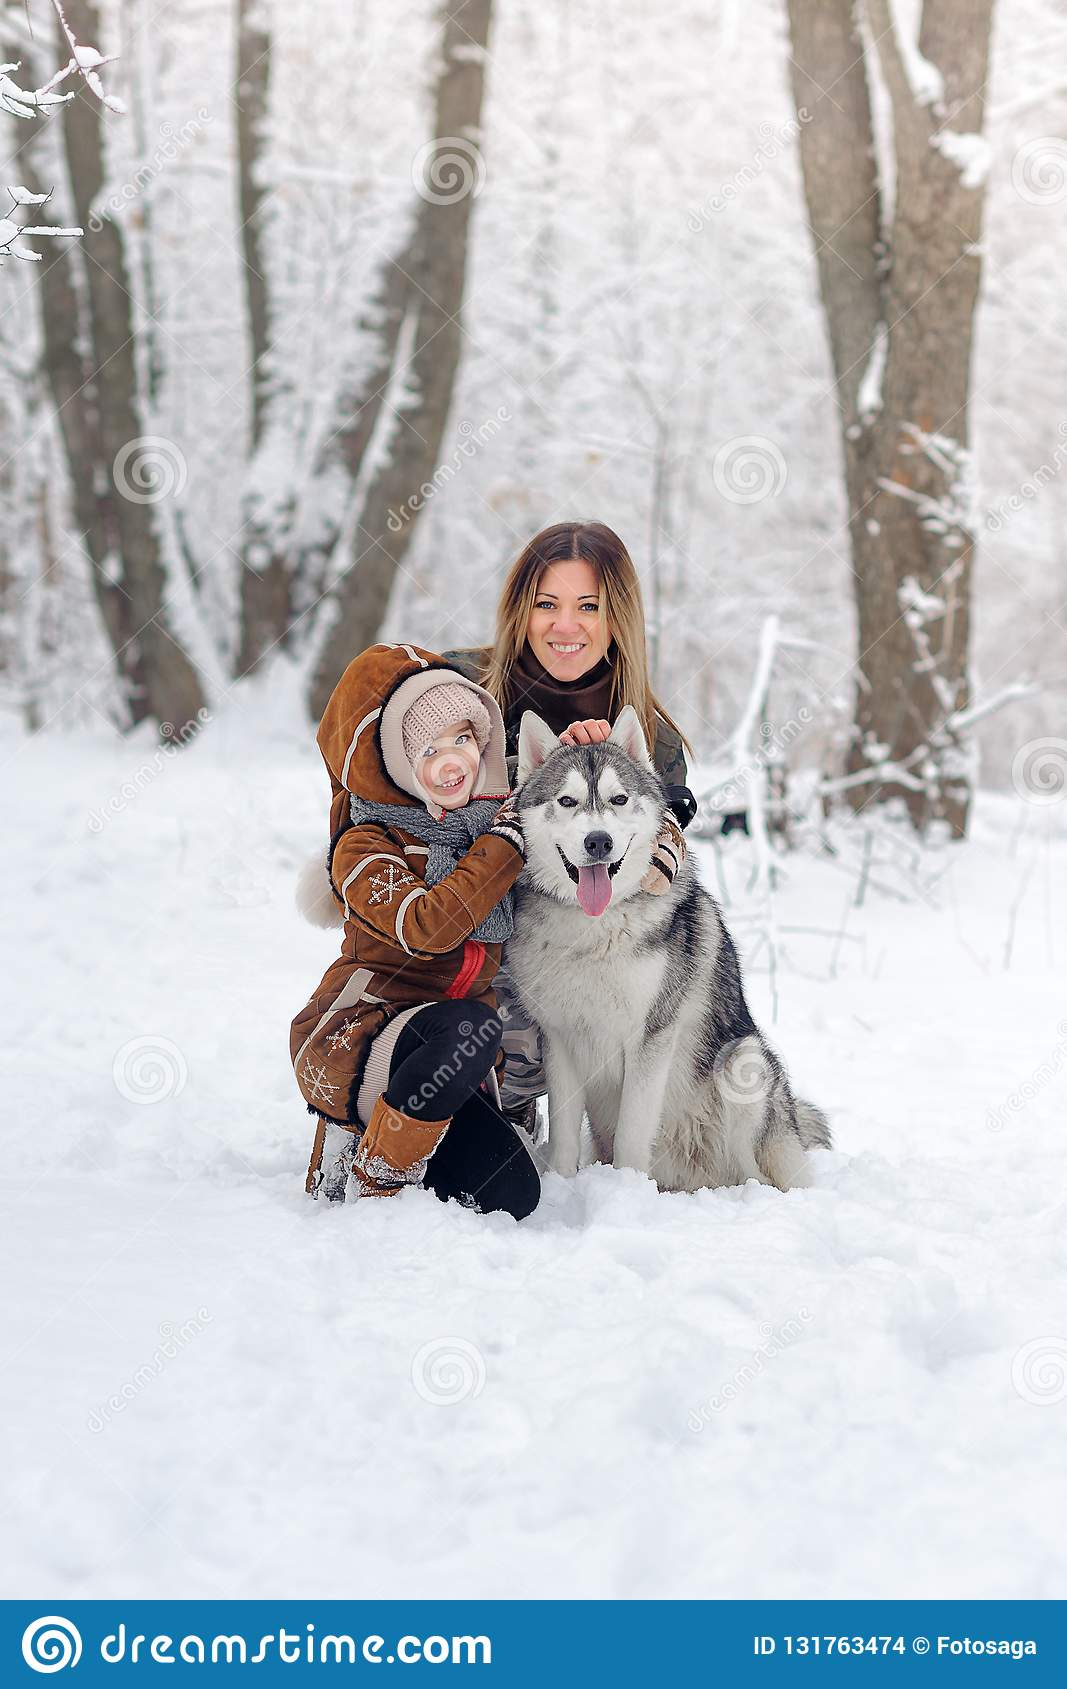 The happy family with dogs huskies poses in beautiful for the snow wood. Trees in snow